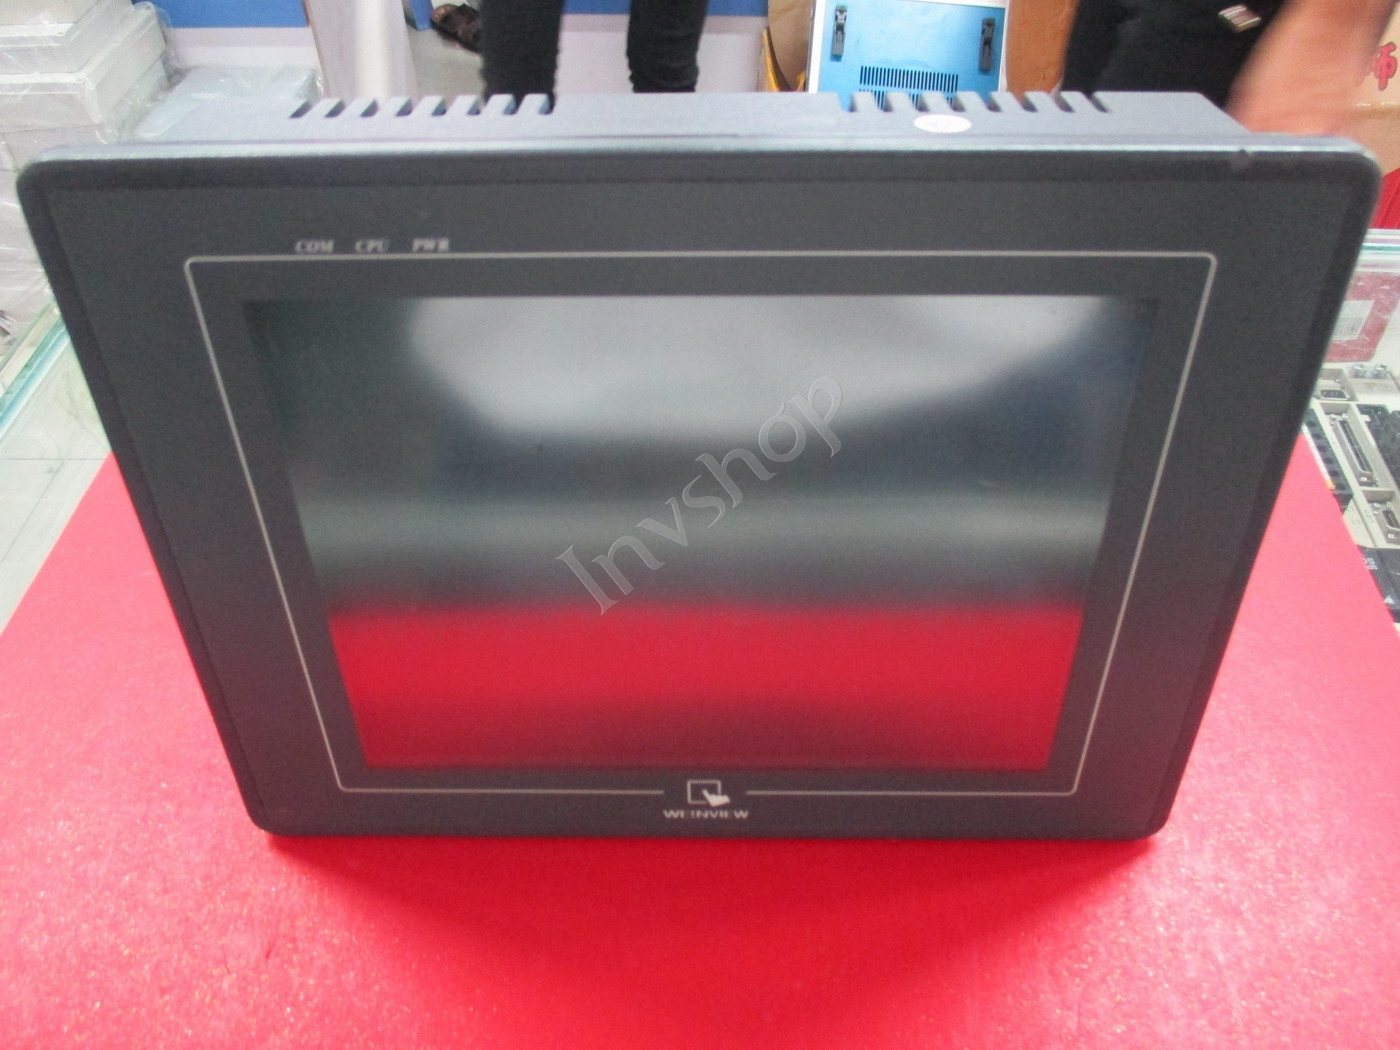 HMI Weinview MT508TV5WV Touch screen